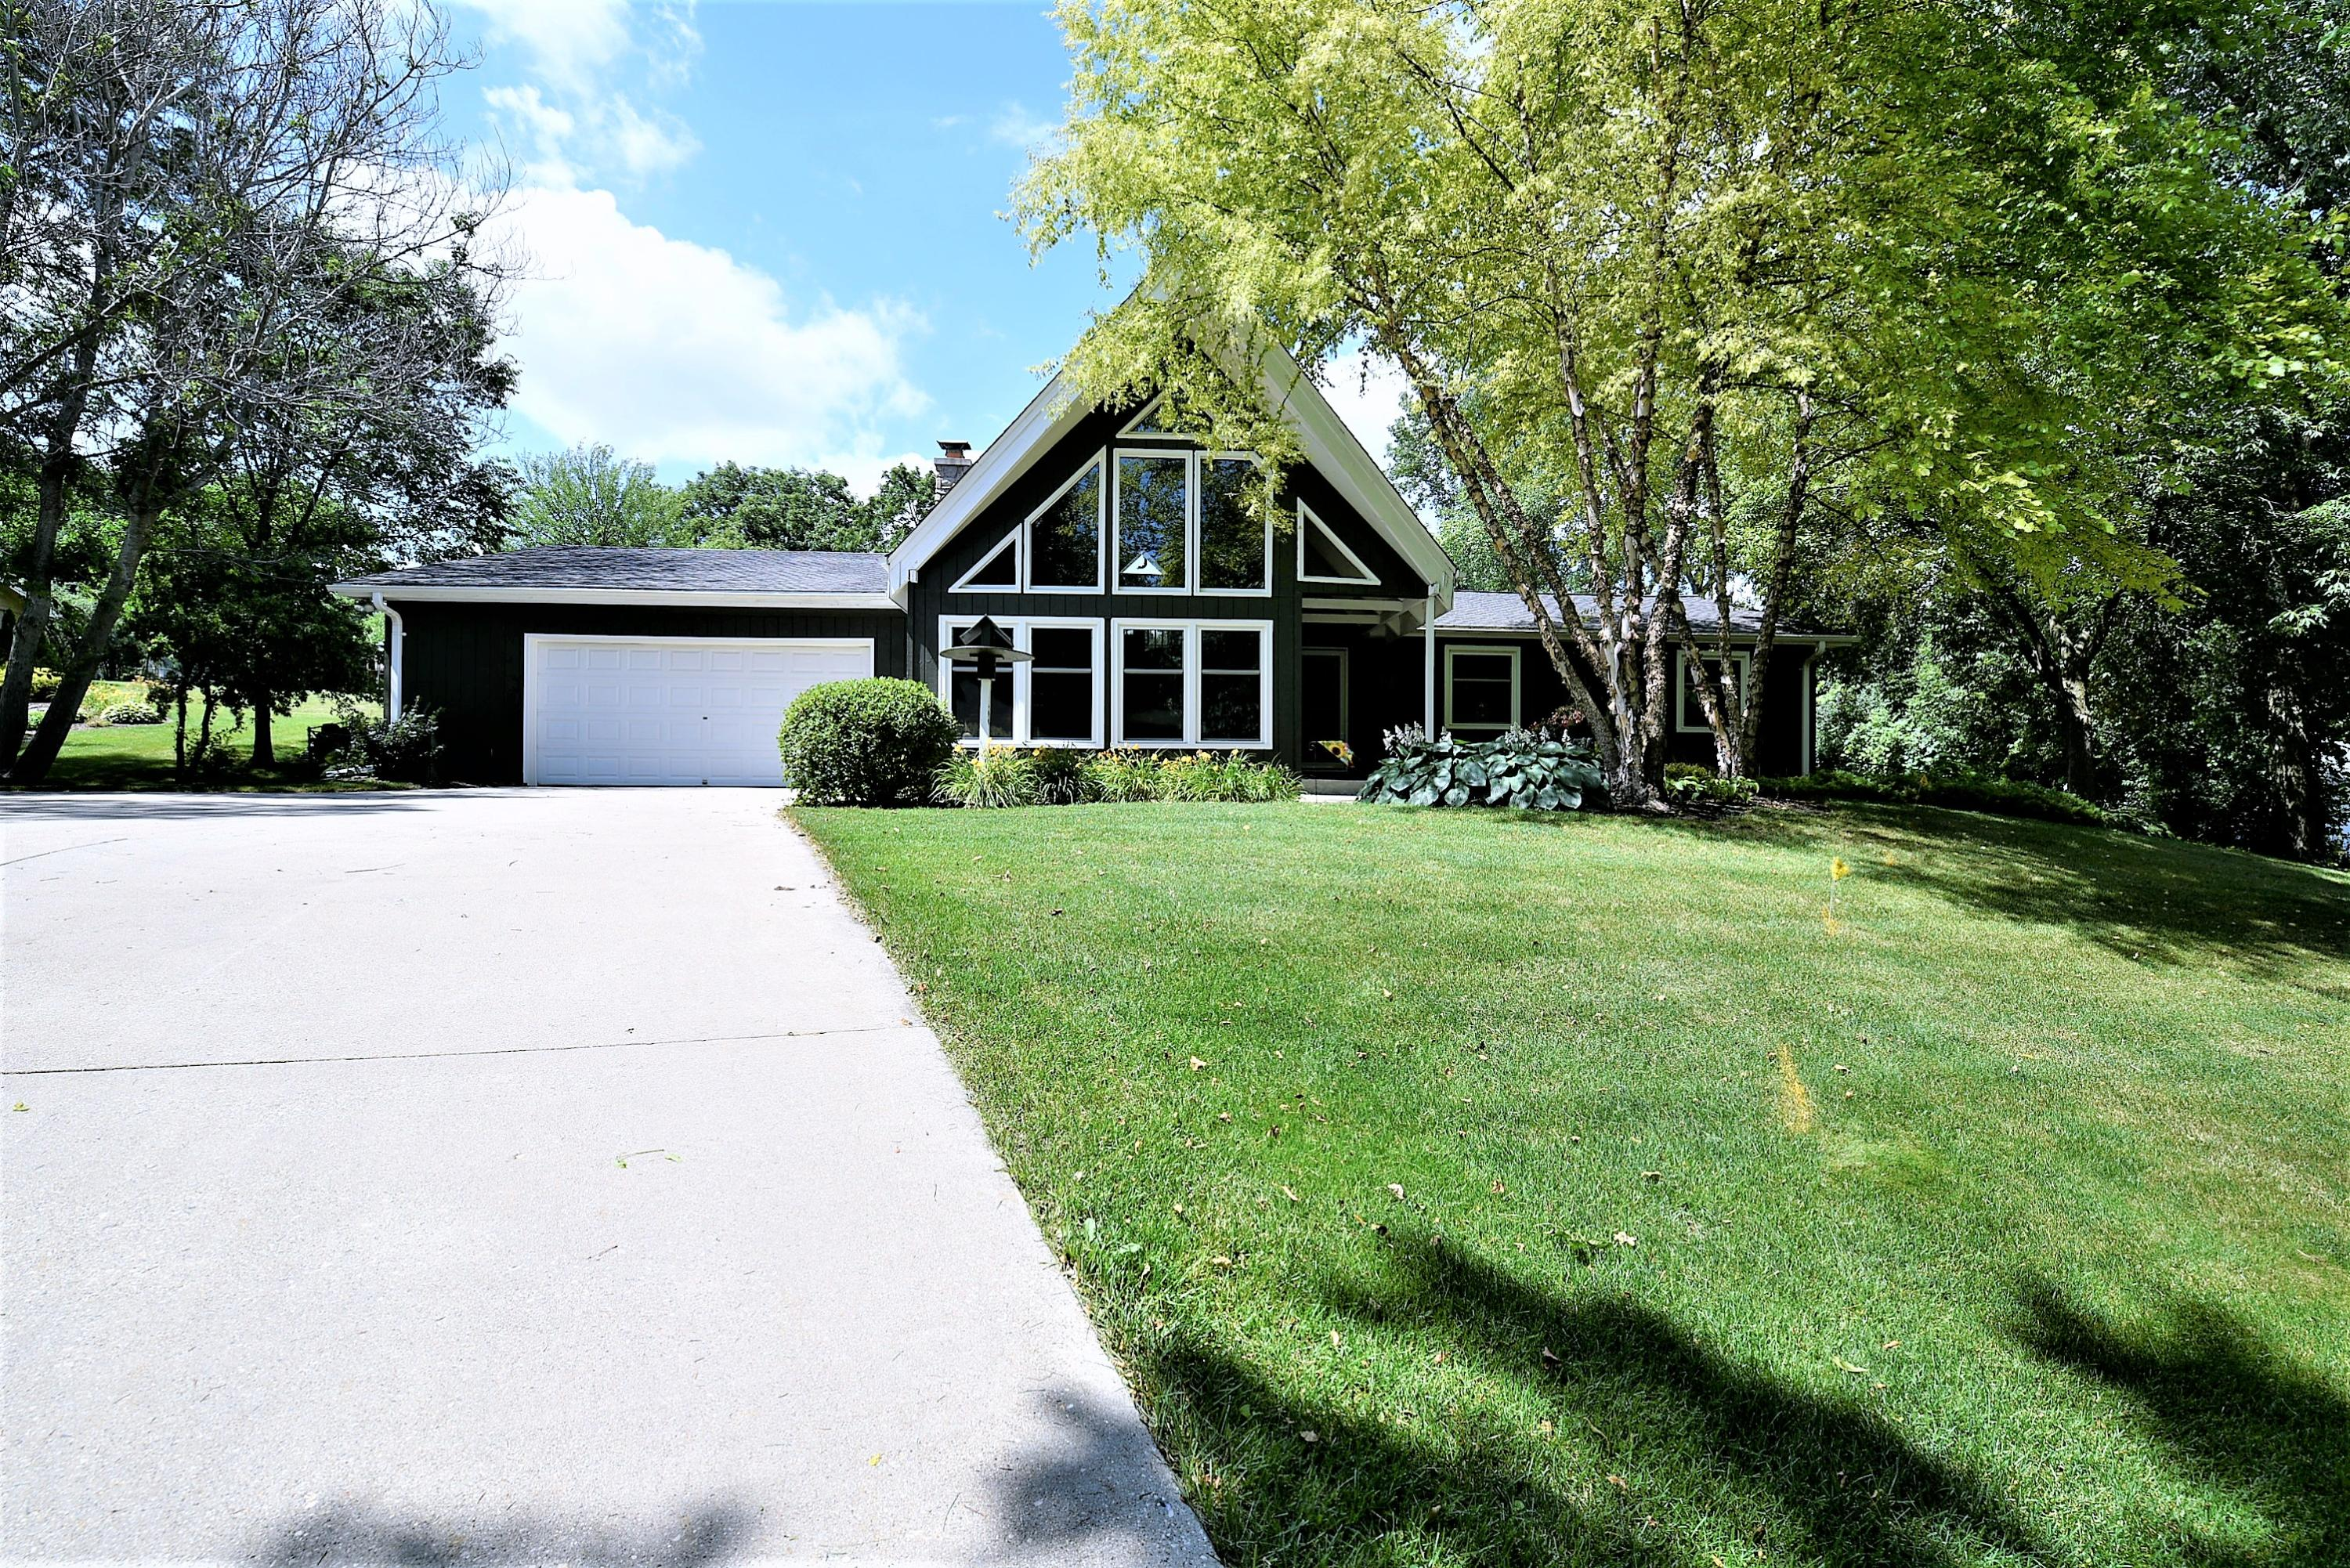 S42W25084 Oakview Dr, Waukesha, Wisconsin 53189, 3 Bedrooms Bedrooms, 8 Rooms Rooms,2 BathroomsBathrooms,Single-Family,For Sale,Oakview Dr,1648844